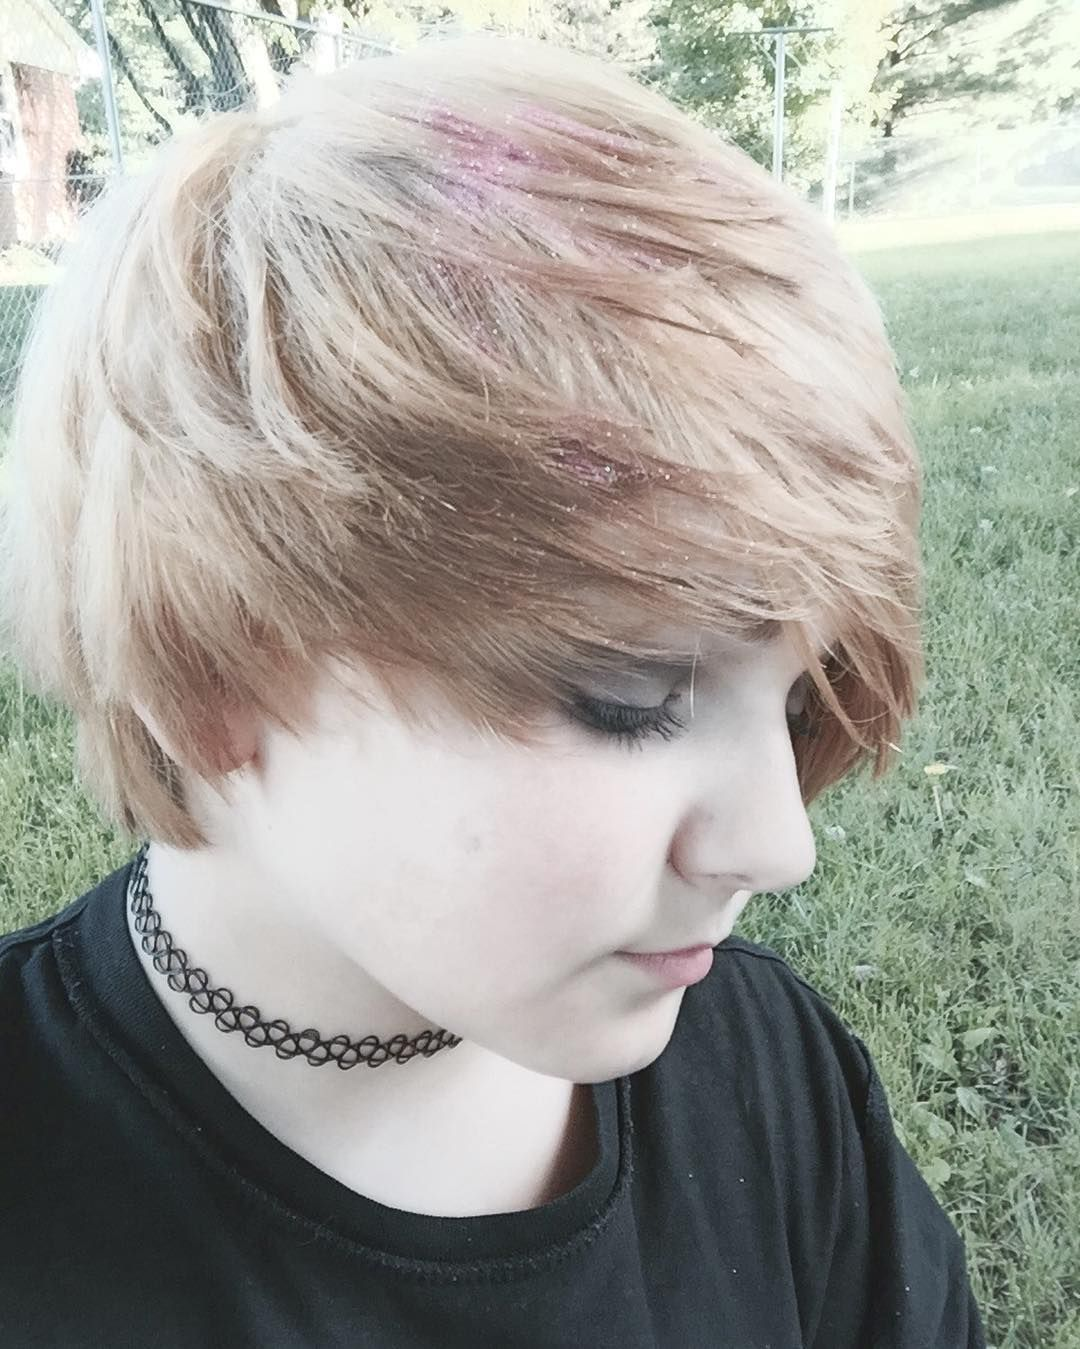 expressive emo hairstyles for girls u choice of a nonconformist